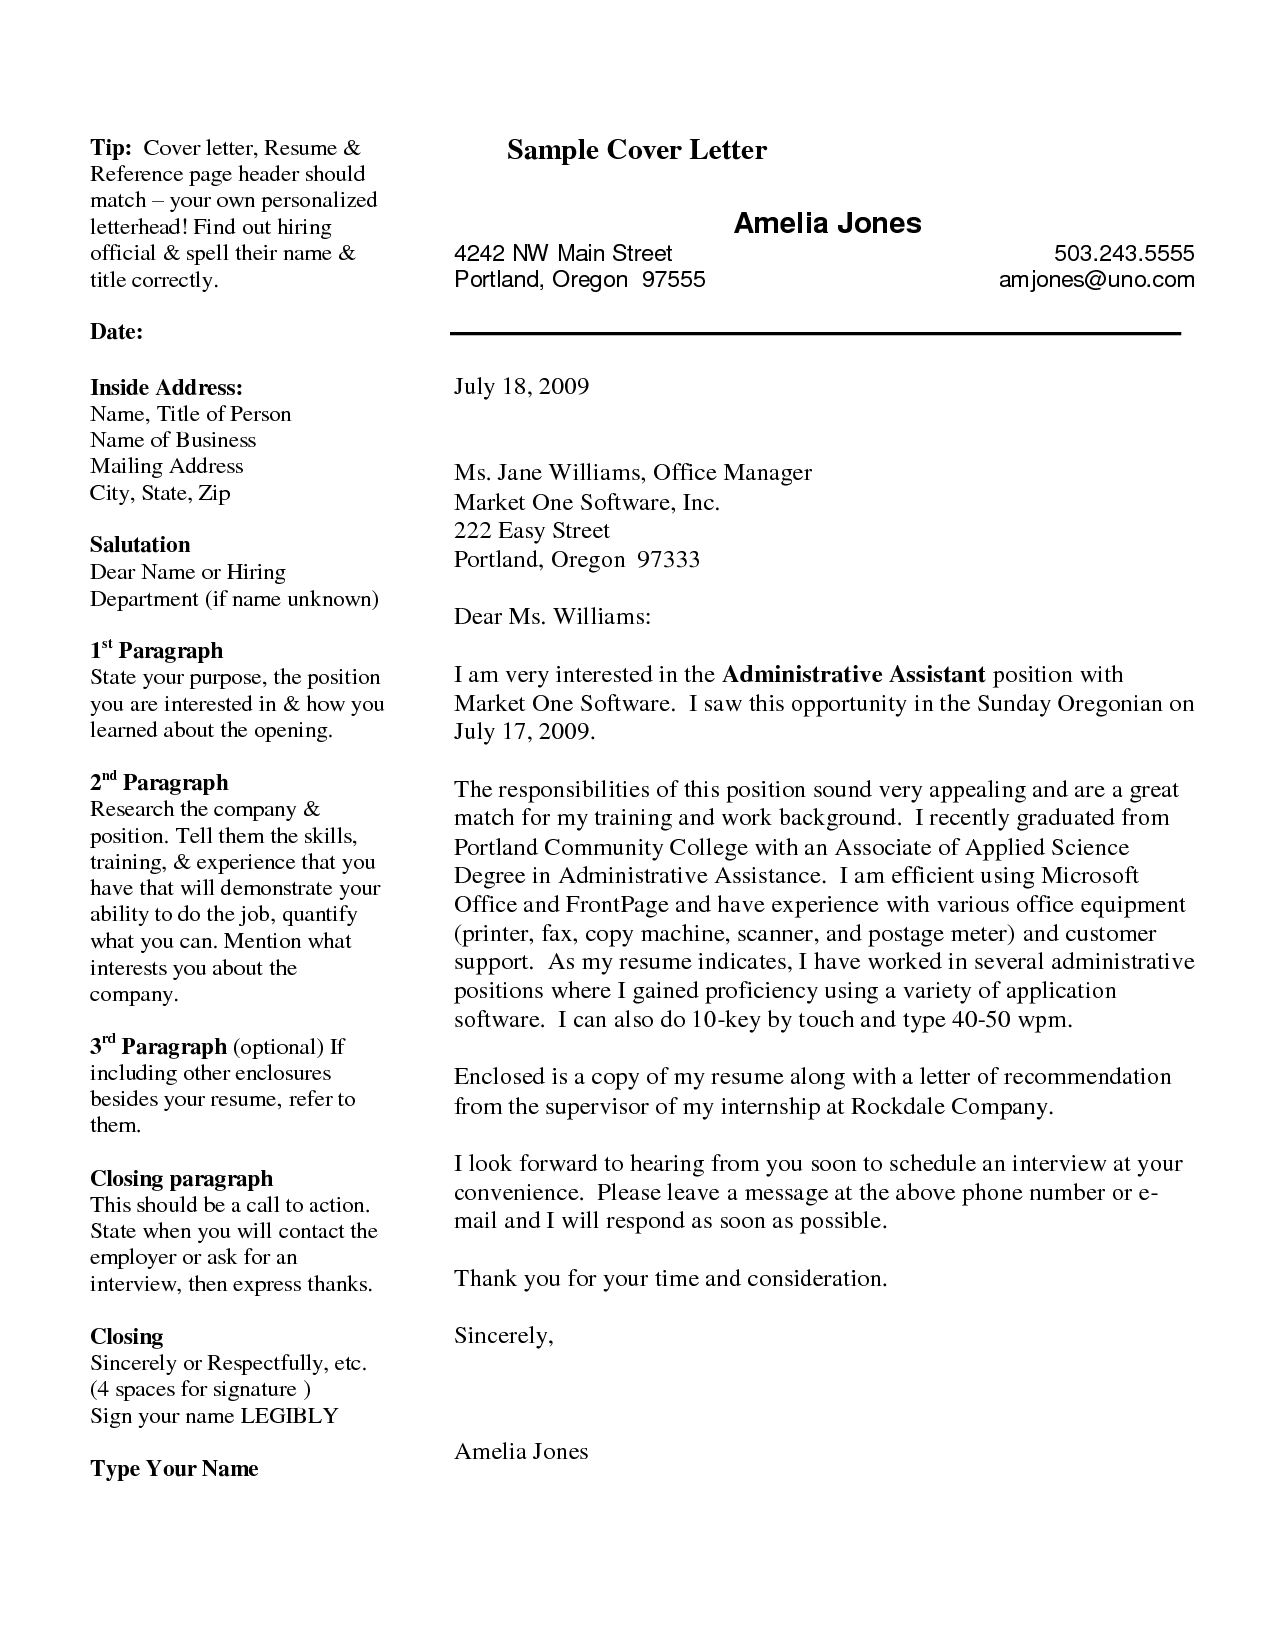 Professional Resume Cover Letter SamplesProfessional Resume Cover Letter  Samples Professional Resume Cover Letter Samples,how  What Do You Write On A Cover Letter